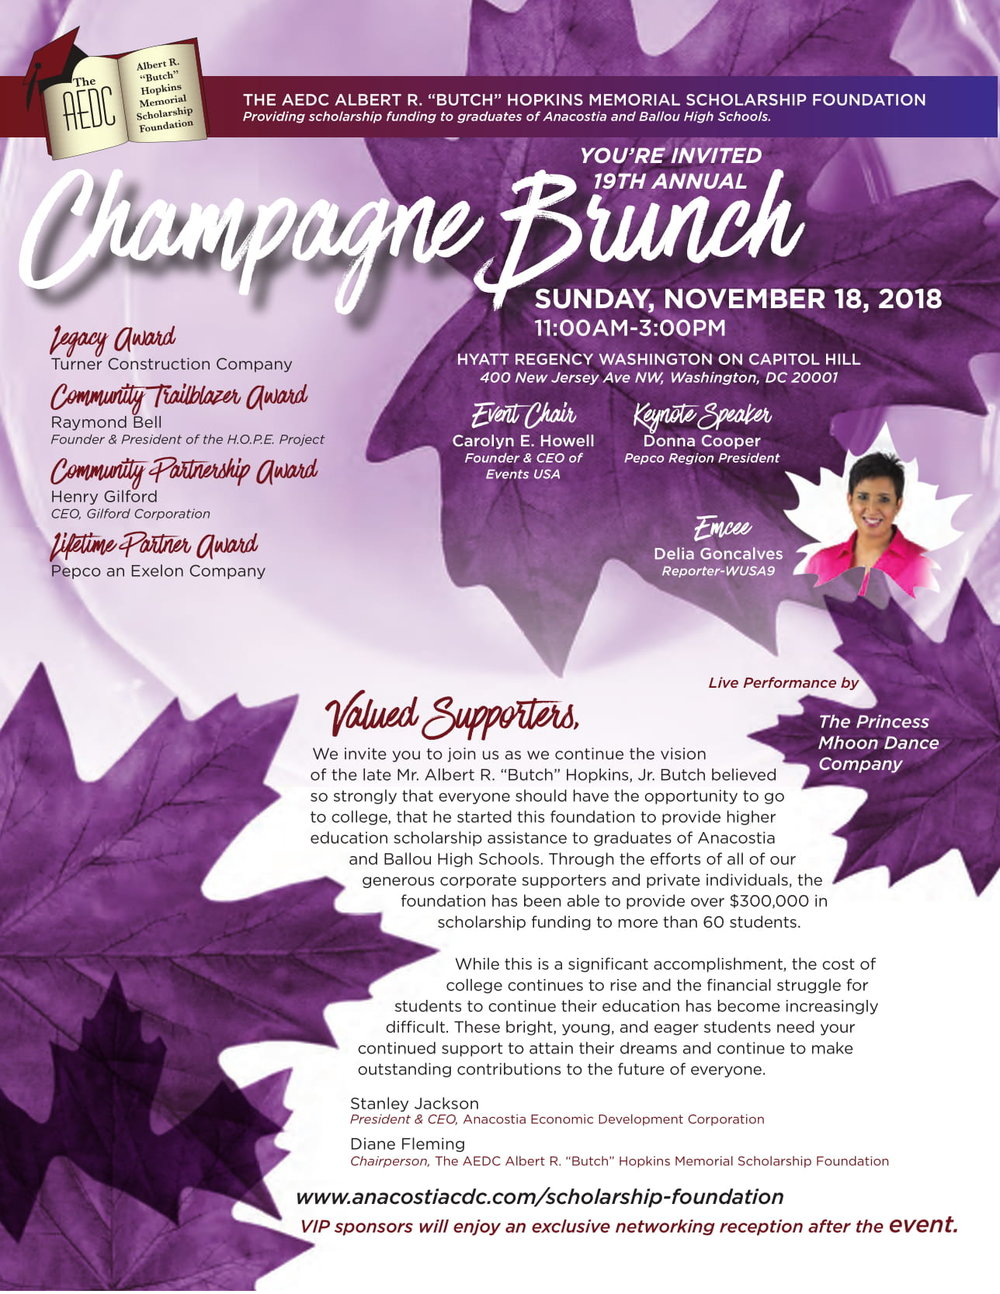 AEDC Champagne Brunch 2018.EMAIL (1)-1.jpg